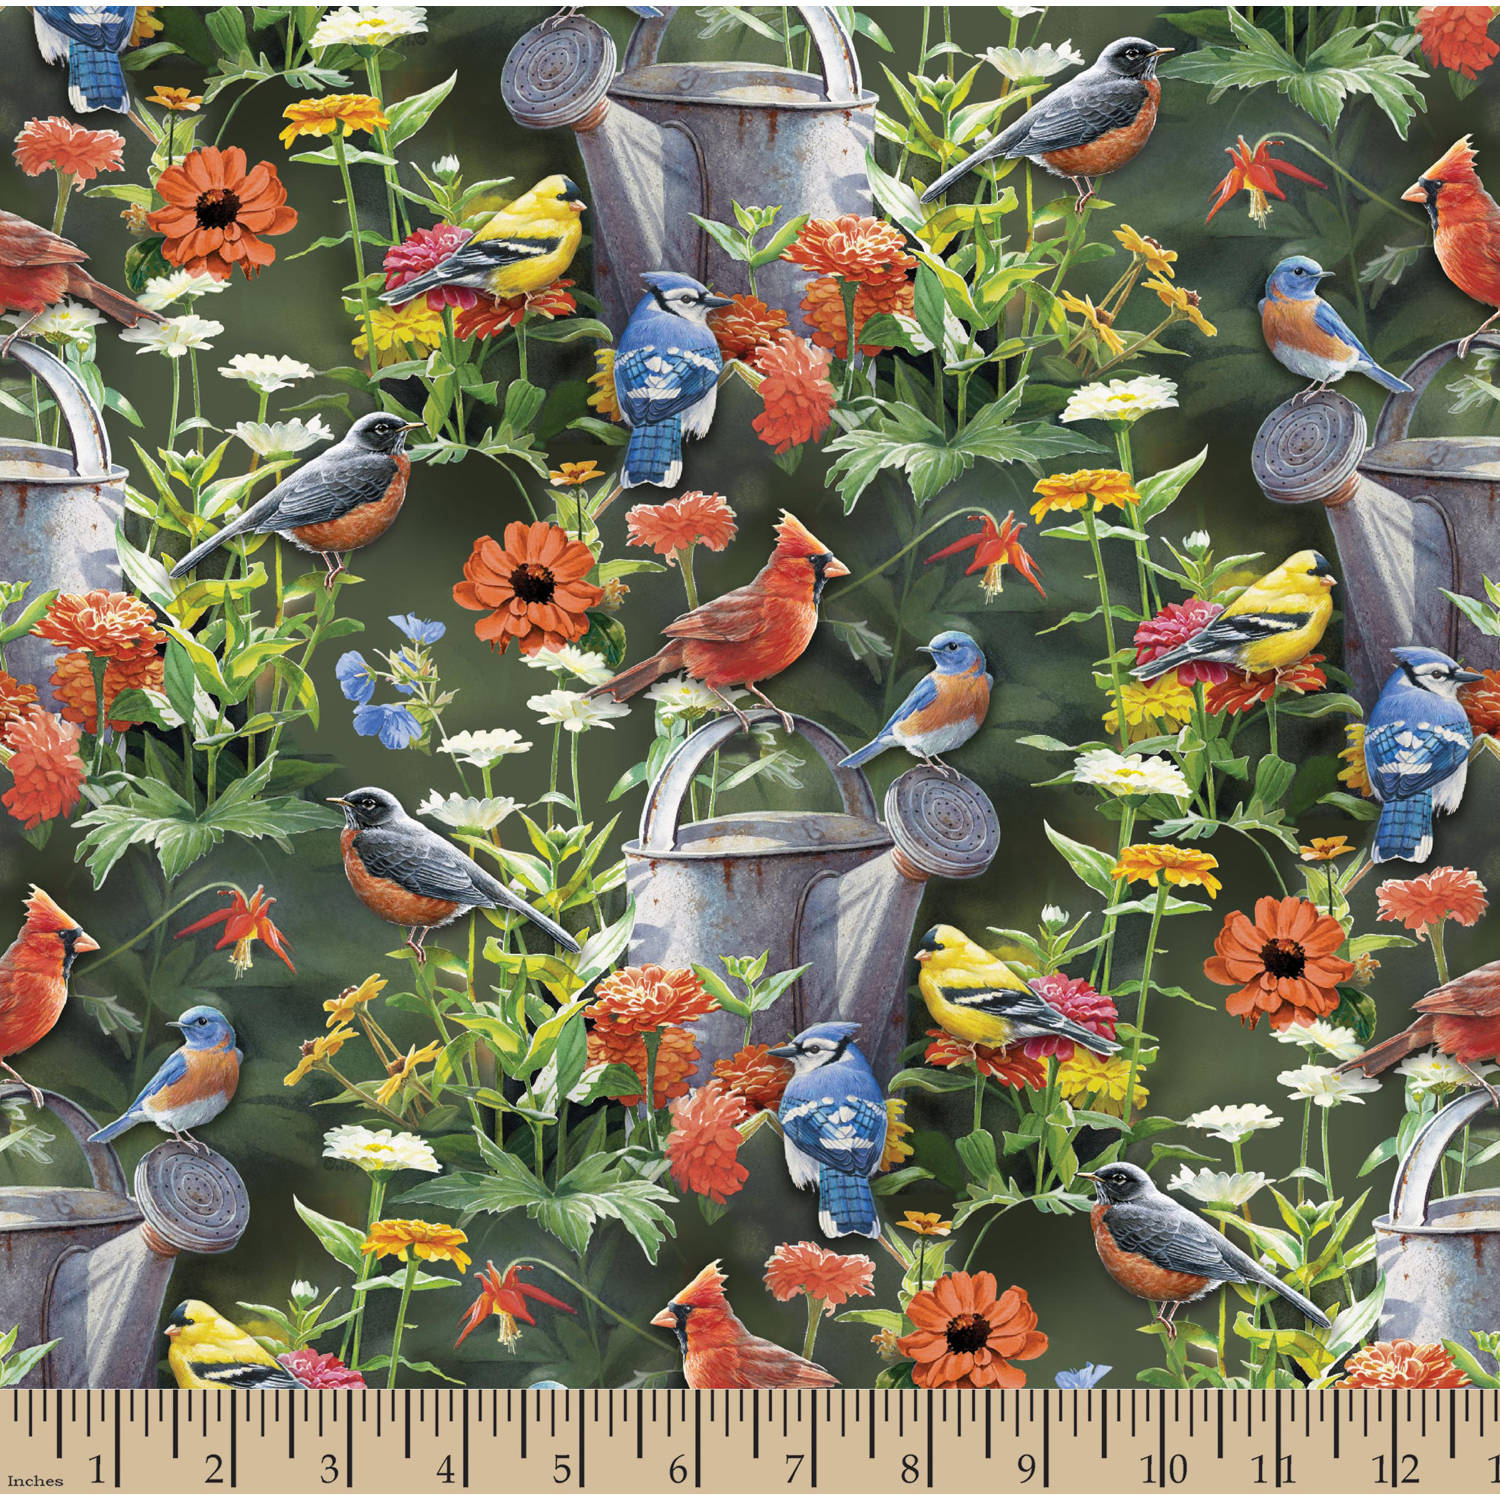 "Wild Wings Scenics Fine Feathered Friends, Multi-Colored, 43/44"" Width, Fabric by the Yard"